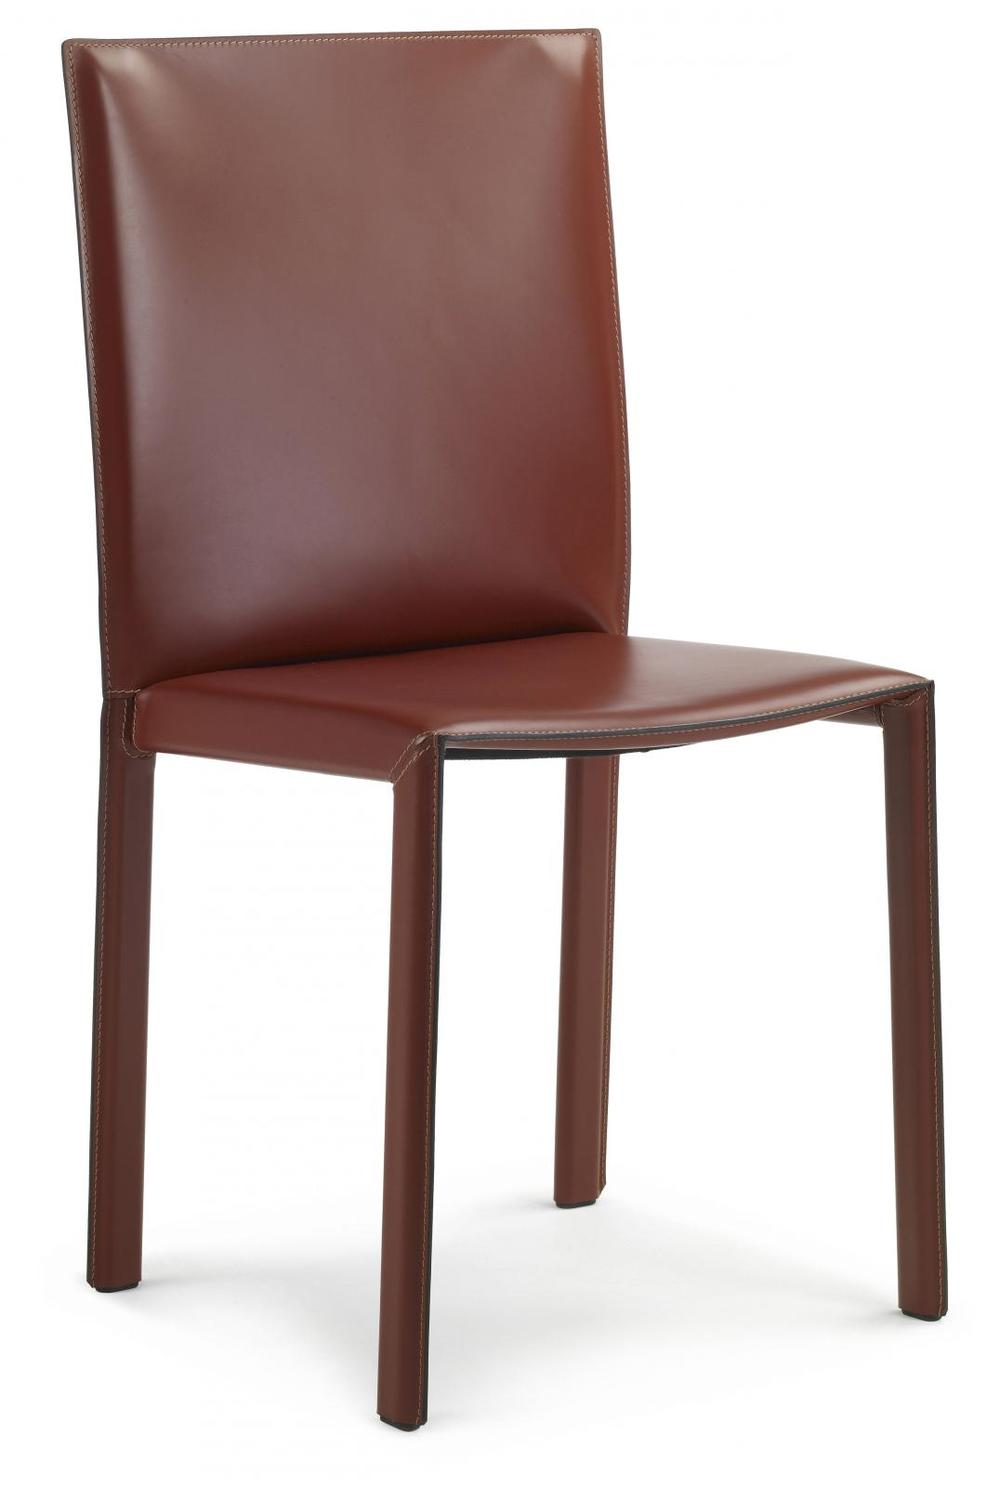 modern-leather-chairs-italian-furniture (28).jpg